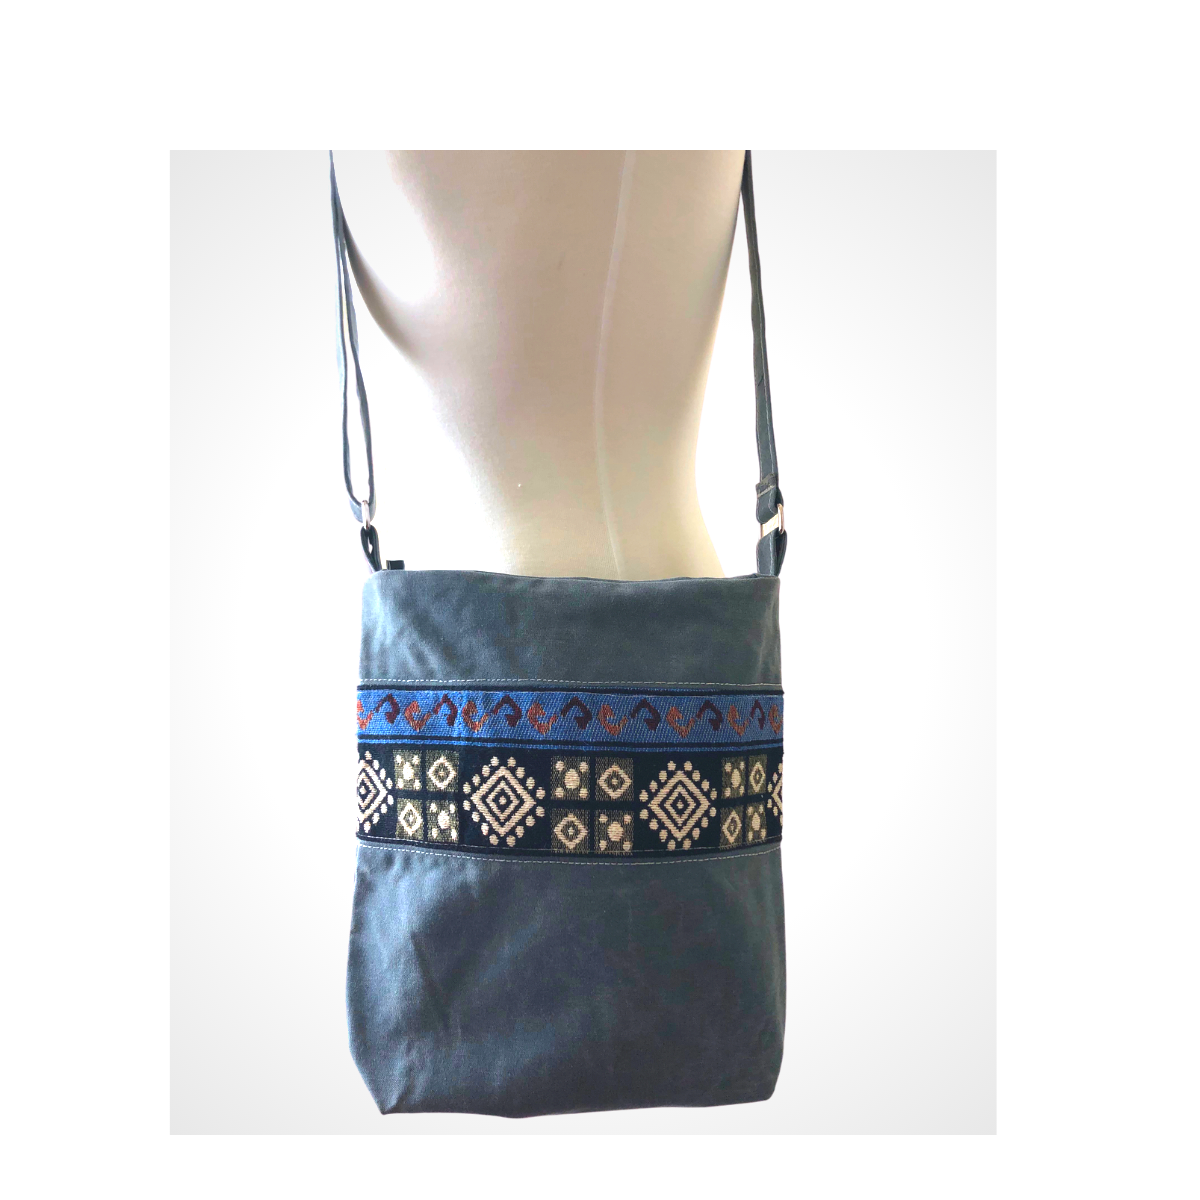 Handwoven Crossbody Purse - Grey with Geometric Shapes